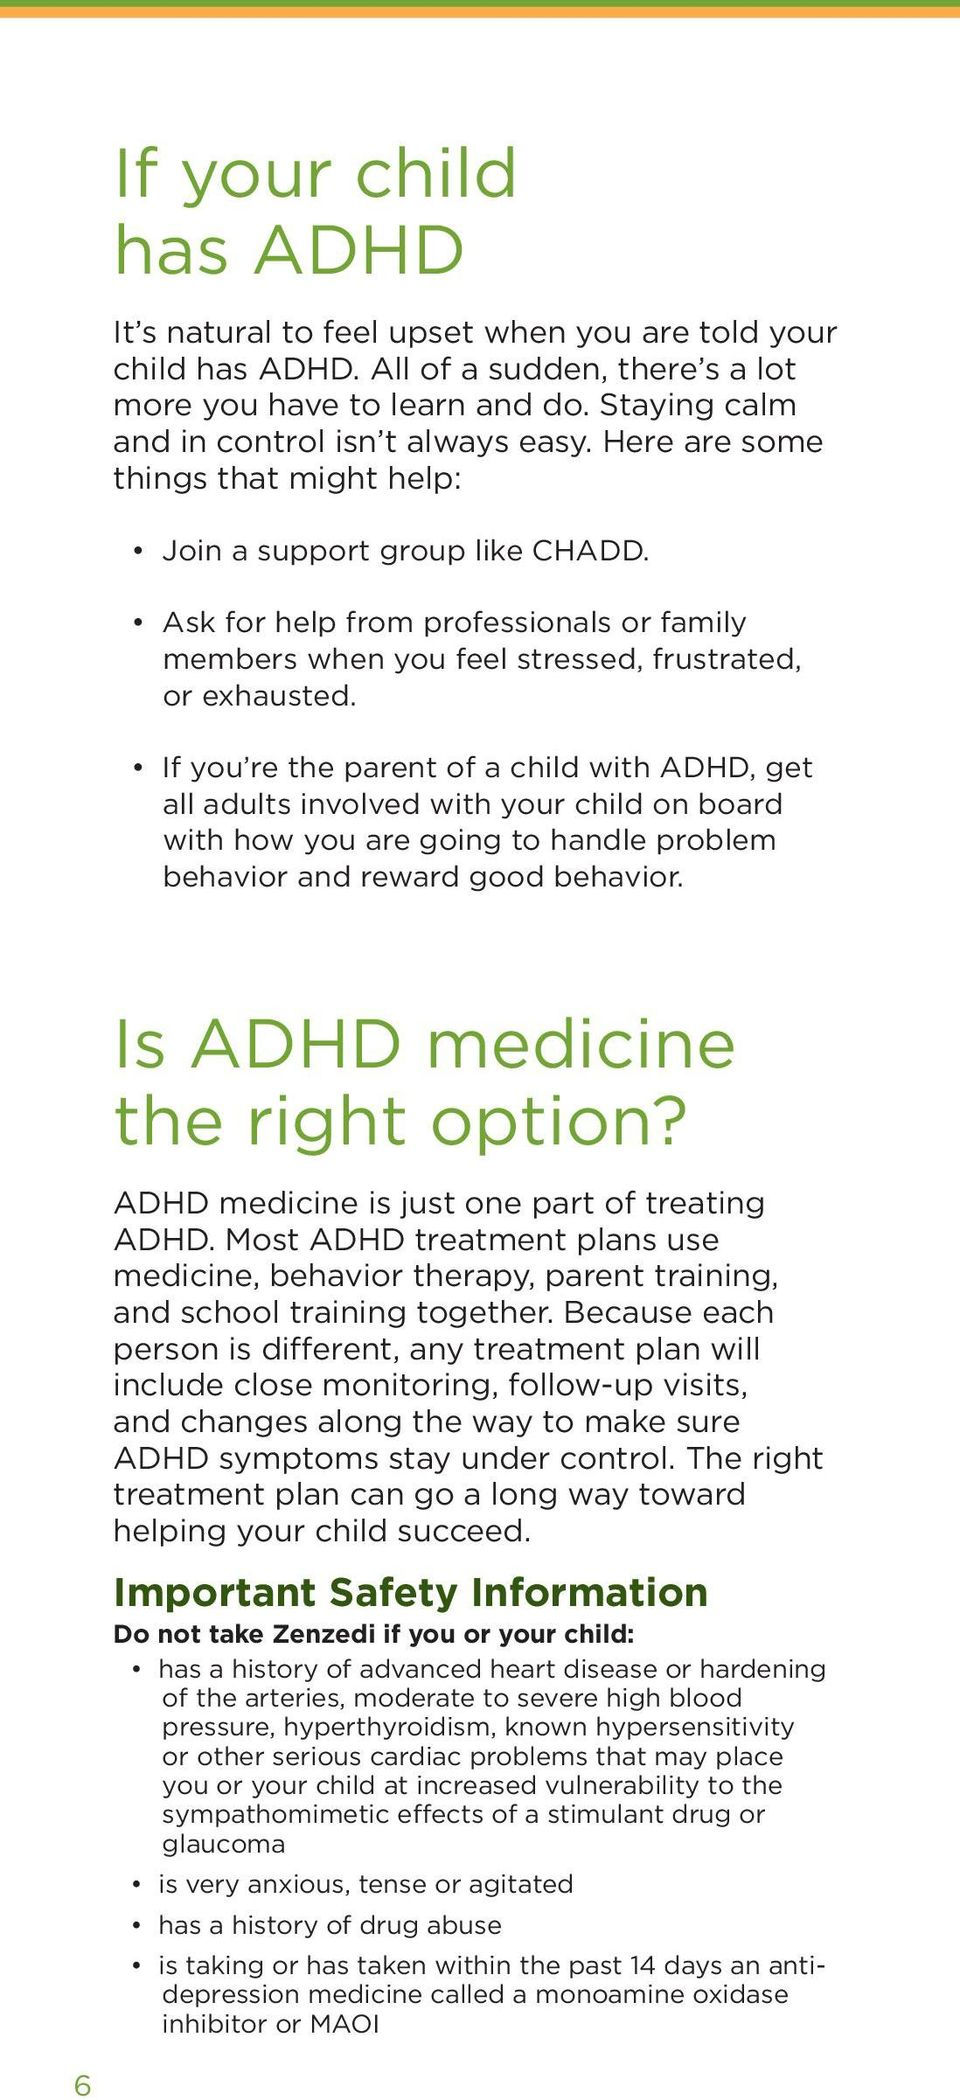 If you re the parent of a child with ADHD, get all adults involved with your child on board with how you are going to handle problem behavior and reward good behavior.